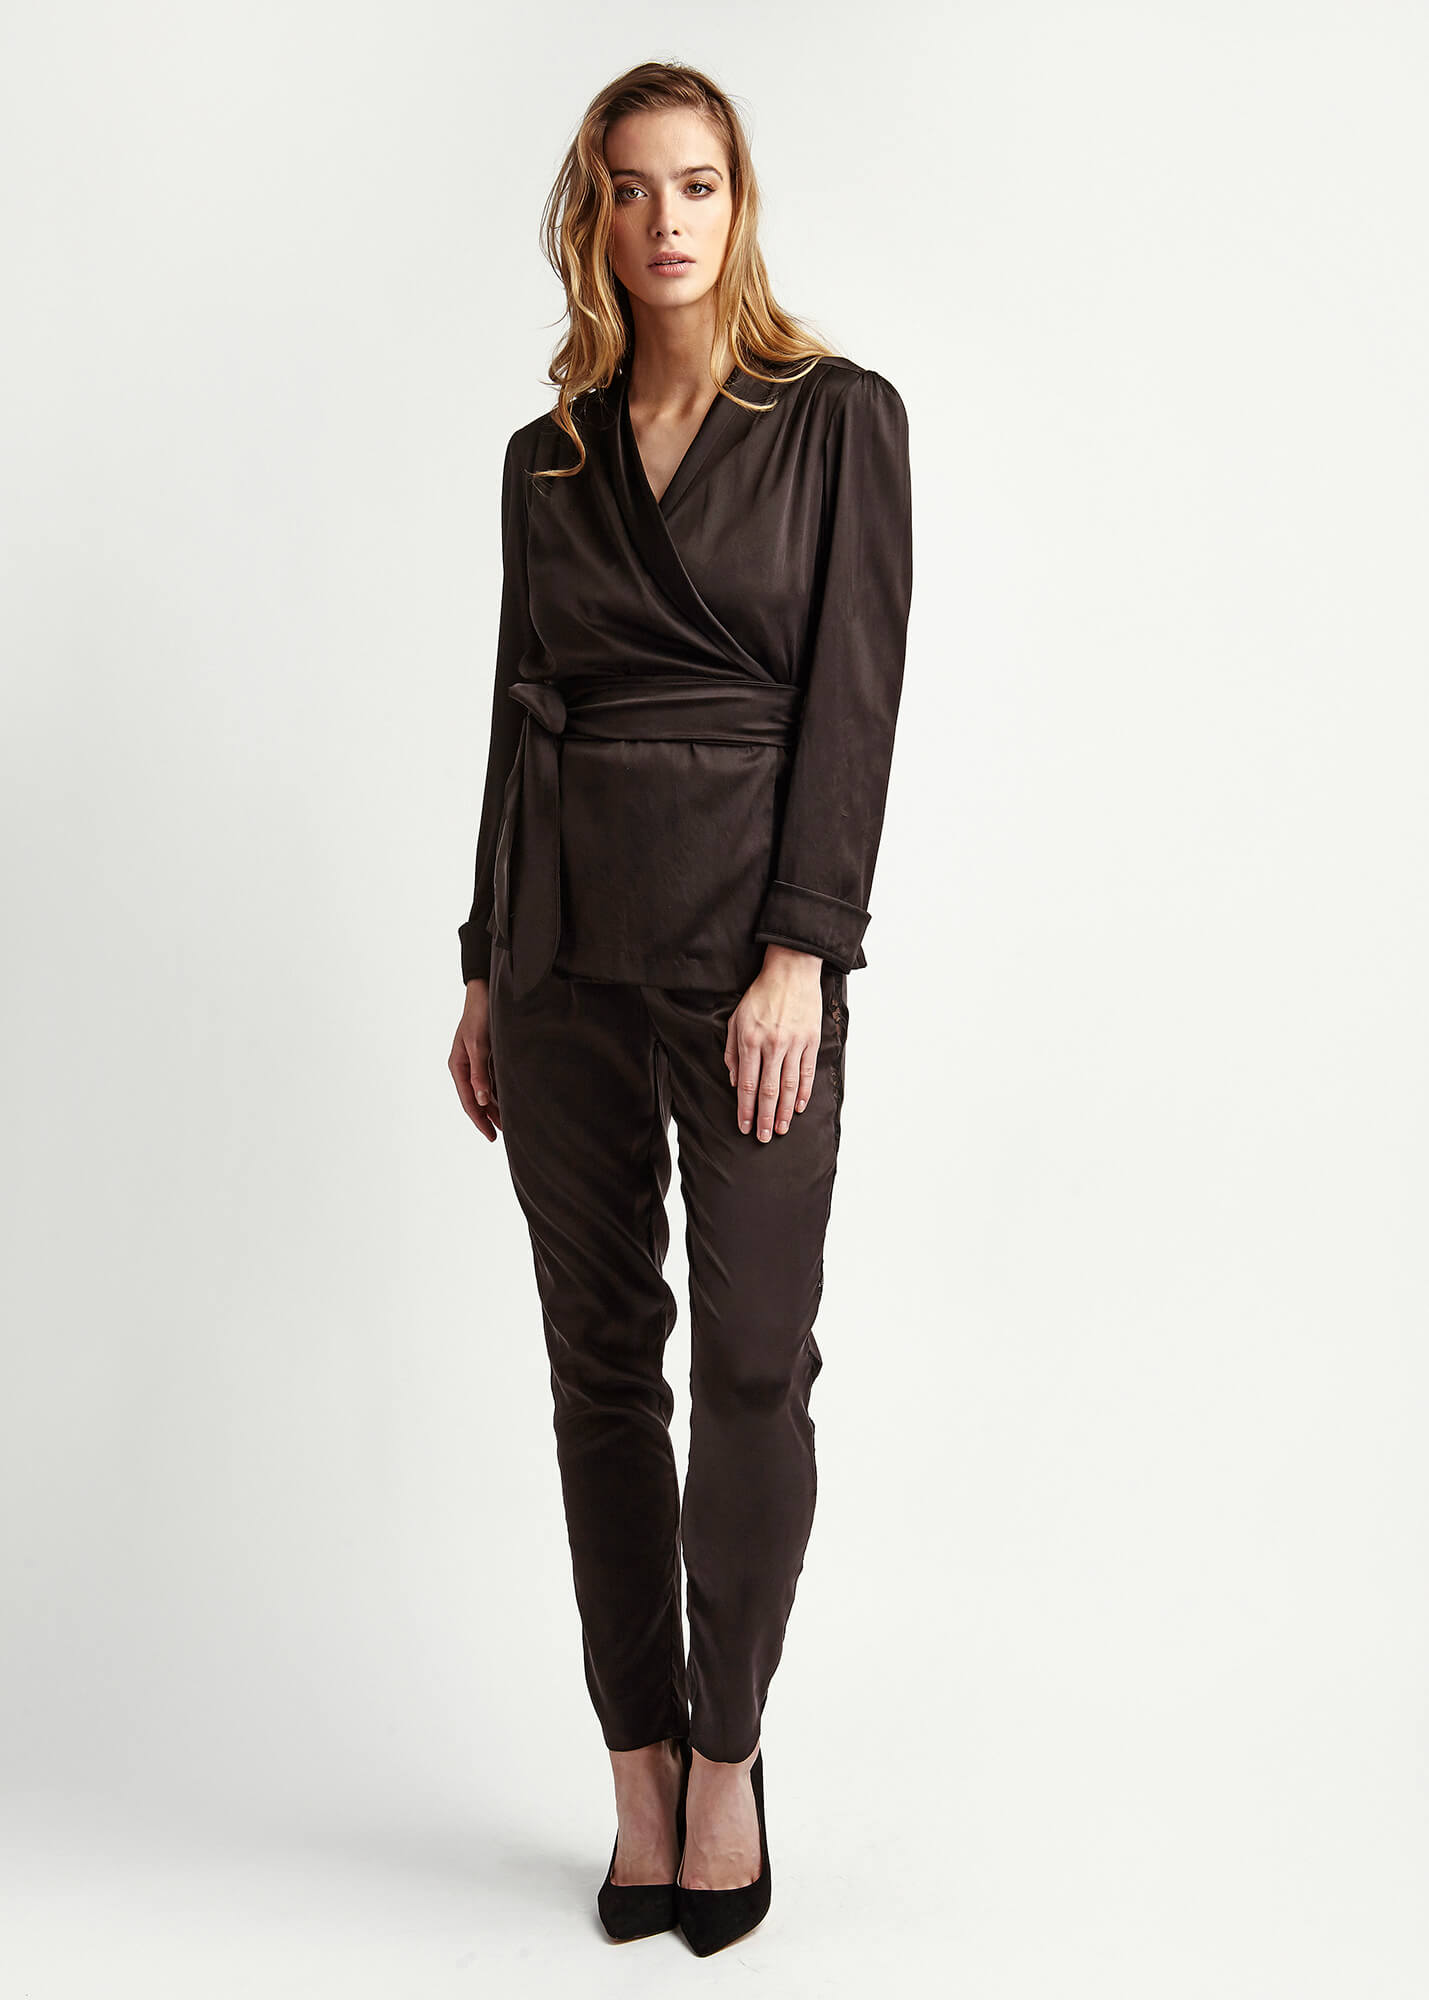 Roxy Dusk Silk Suit